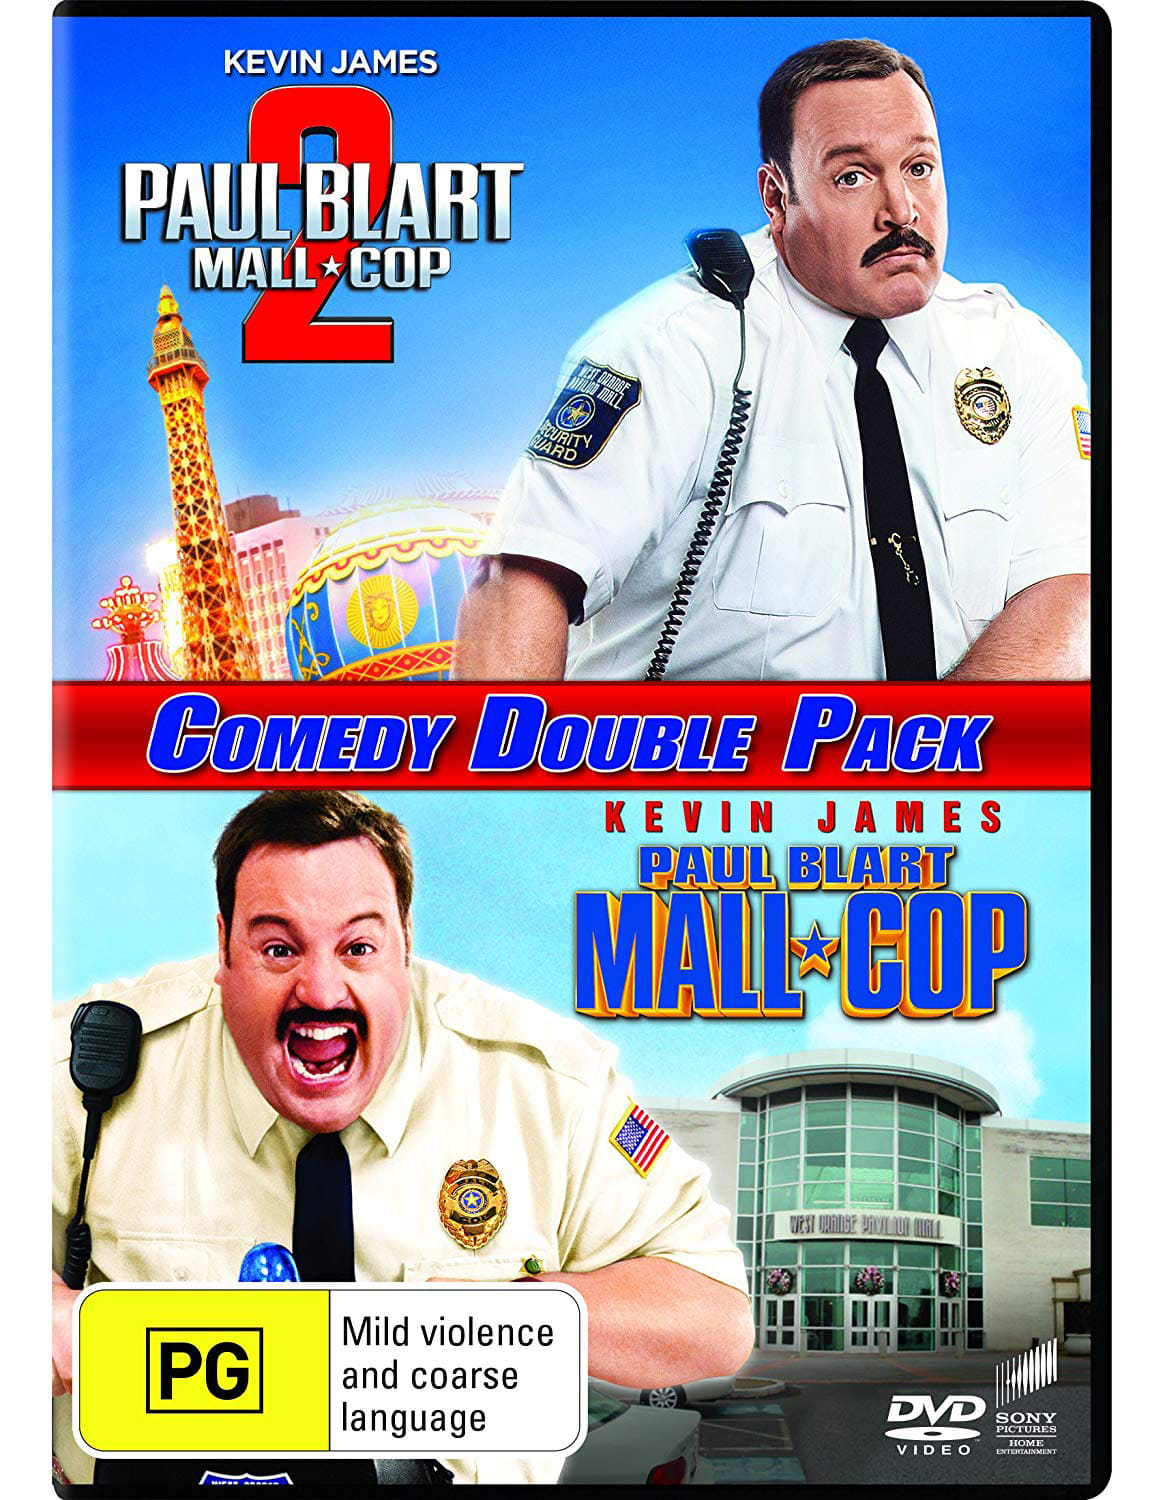 Paul Blart - Mall Cop 1 and 2 [DVD]